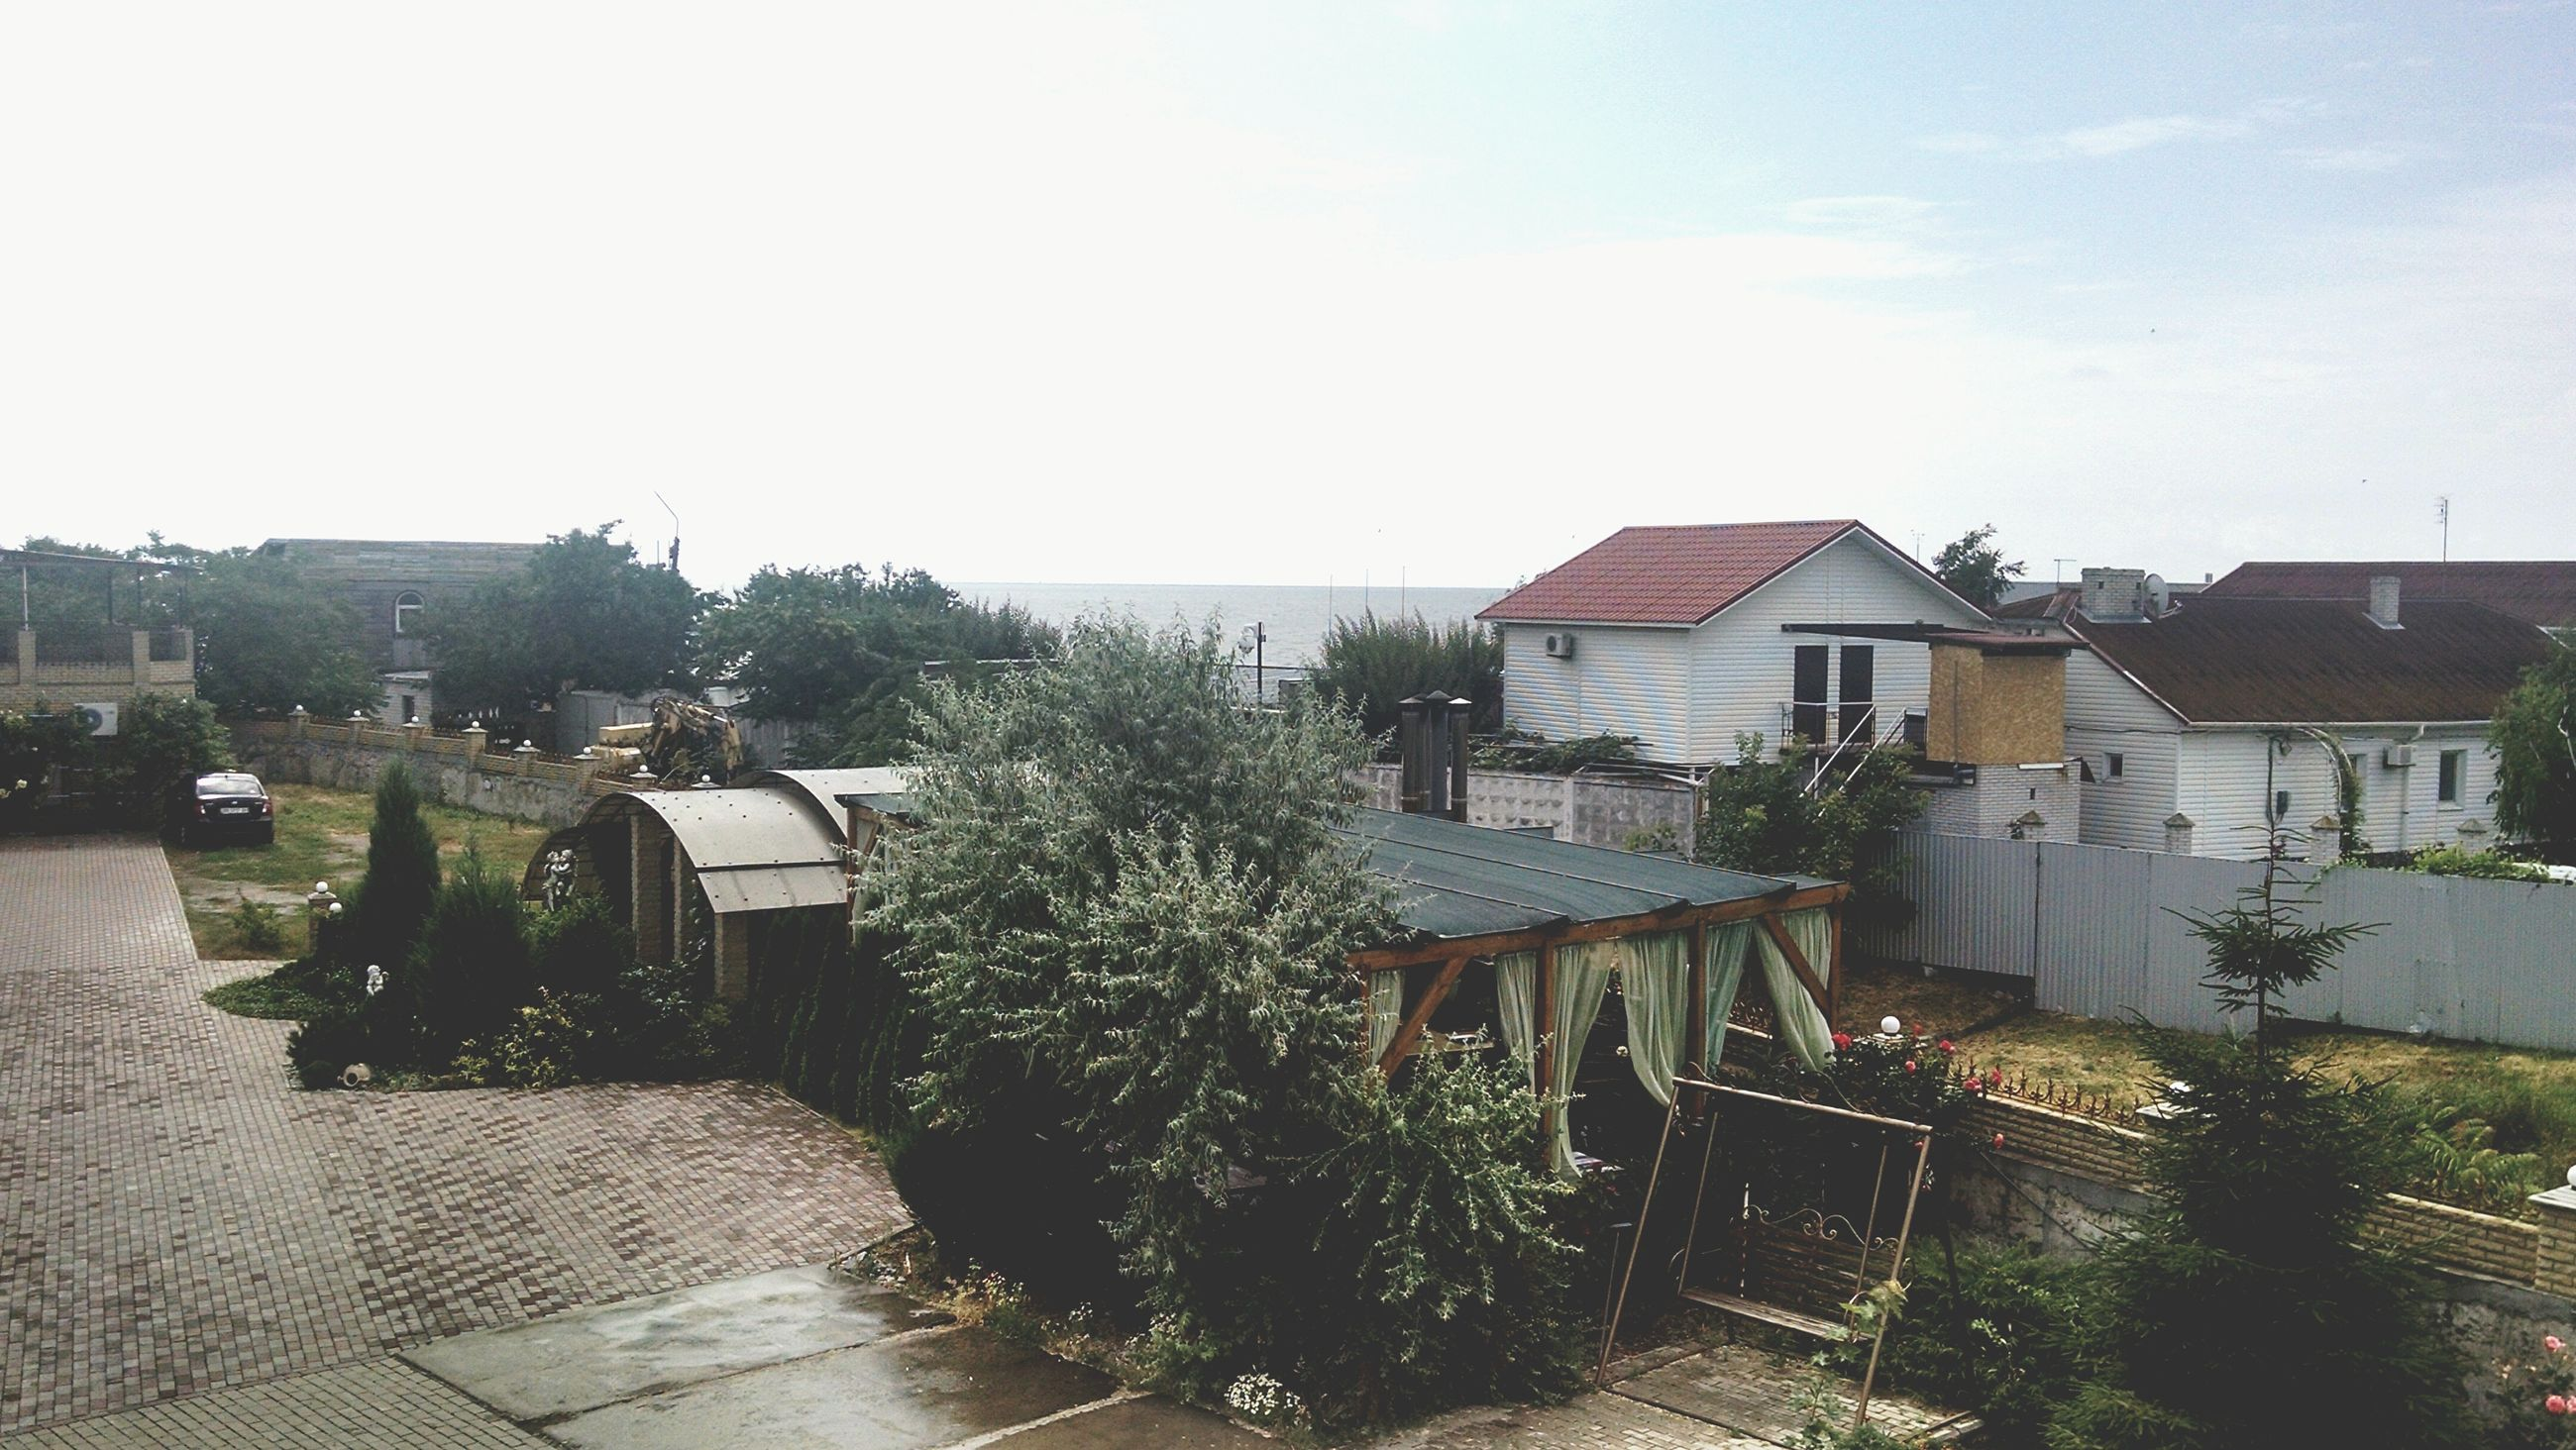 building exterior, architecture, built structure, house, residential structure, residential building, sky, roof, tree, residential district, day, town, high angle view, clear sky, outdoors, plant, growth, no people, nature, sunlight